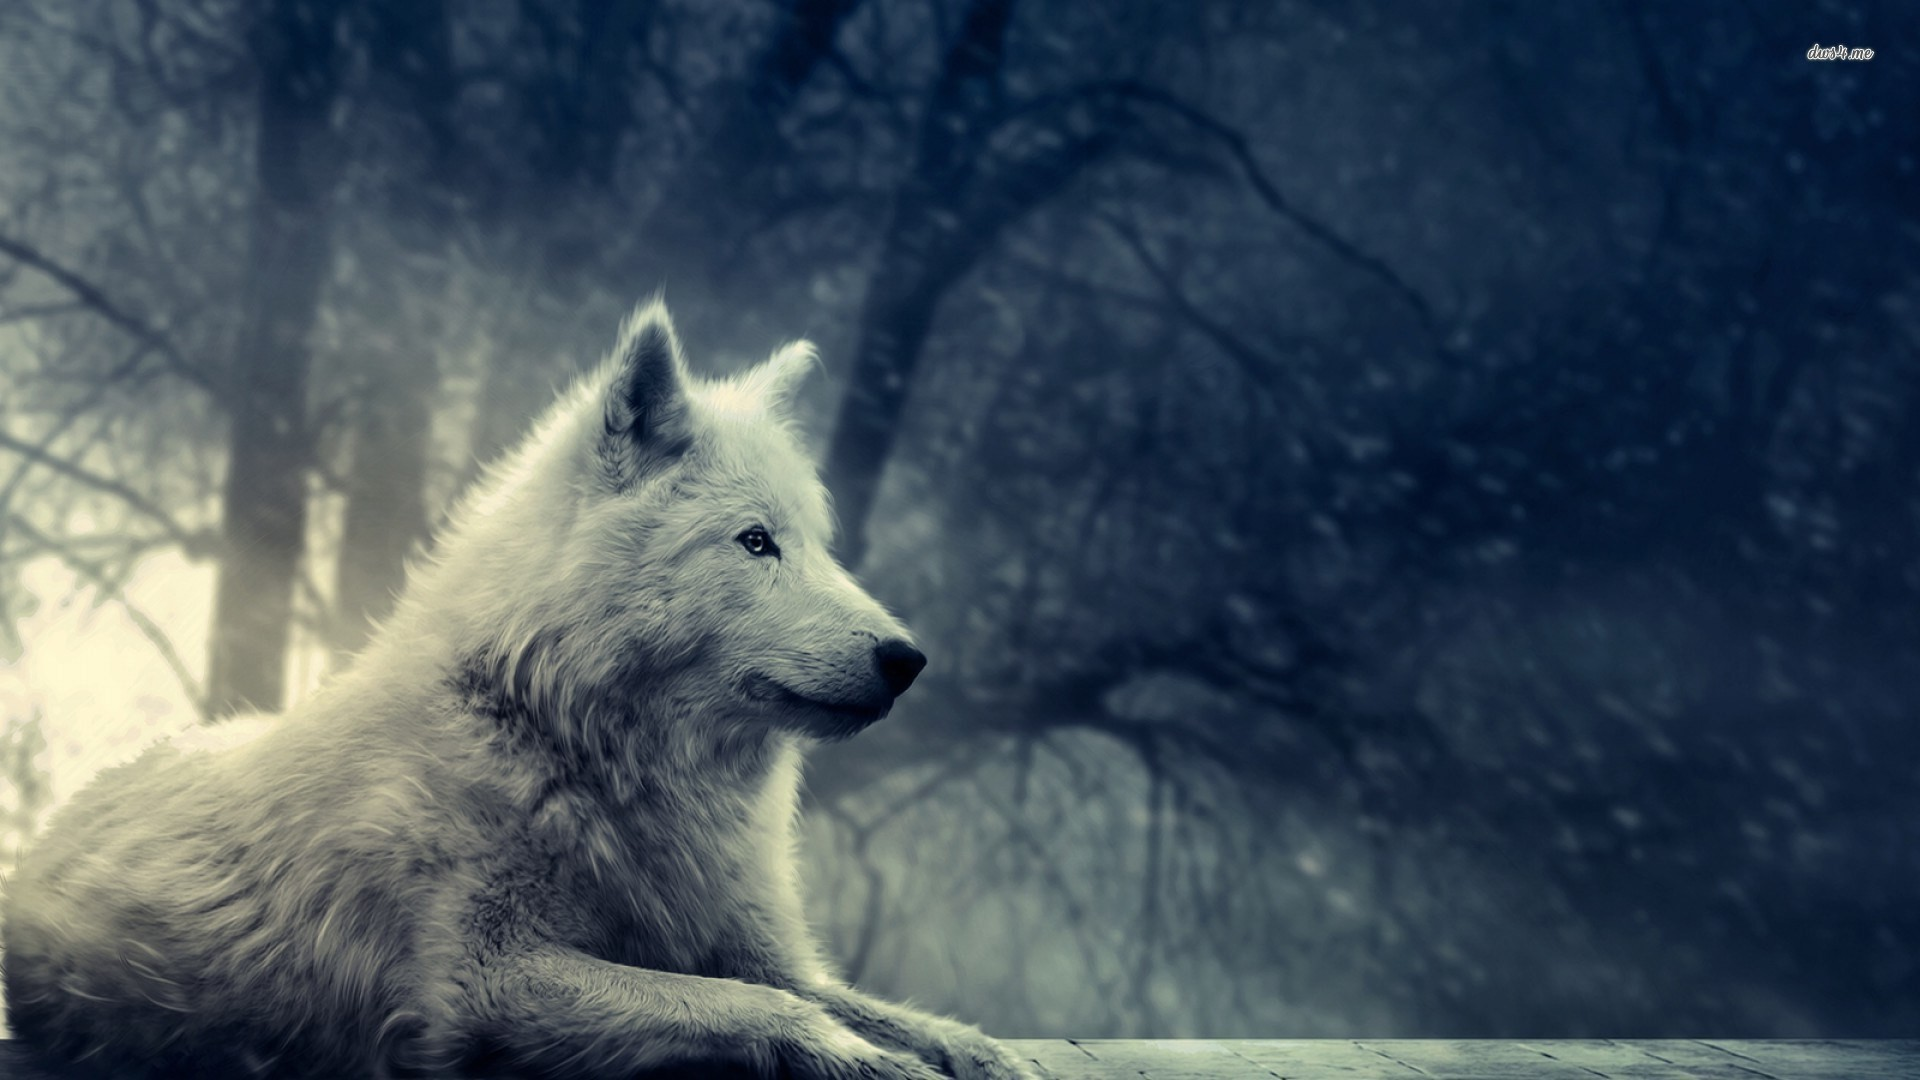 1920x1080 Winfred Nail - wolf art wallpaper for desktops - 1920 x 1080 px